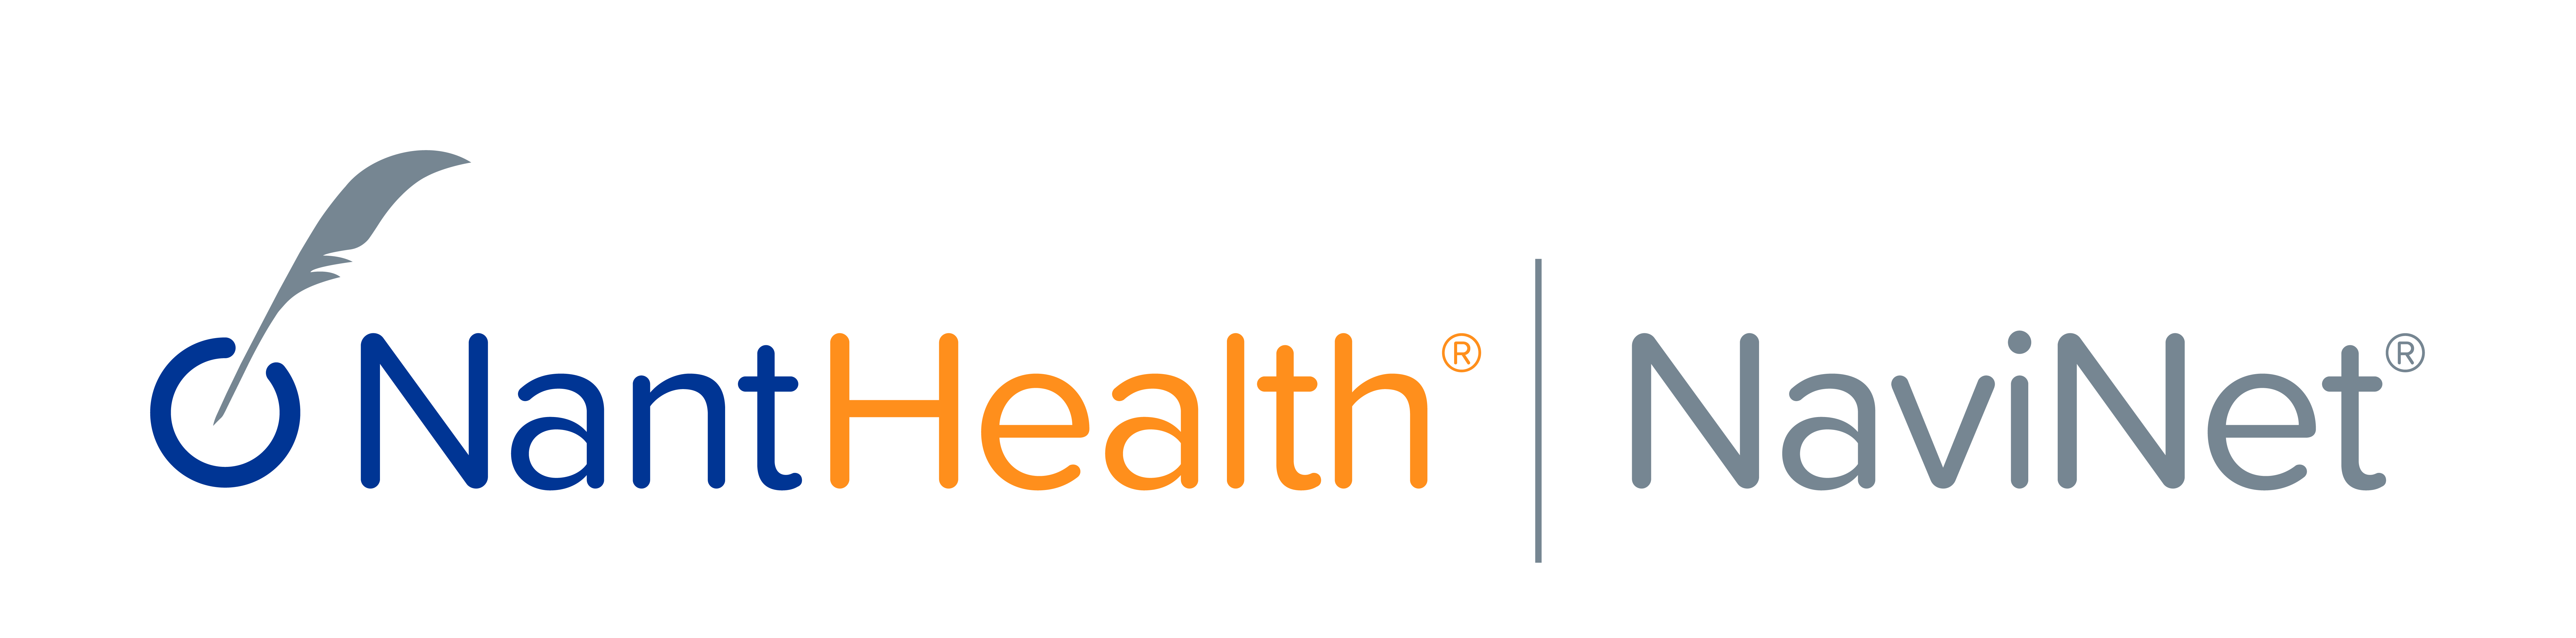 NantHealth | NaviNet Logo